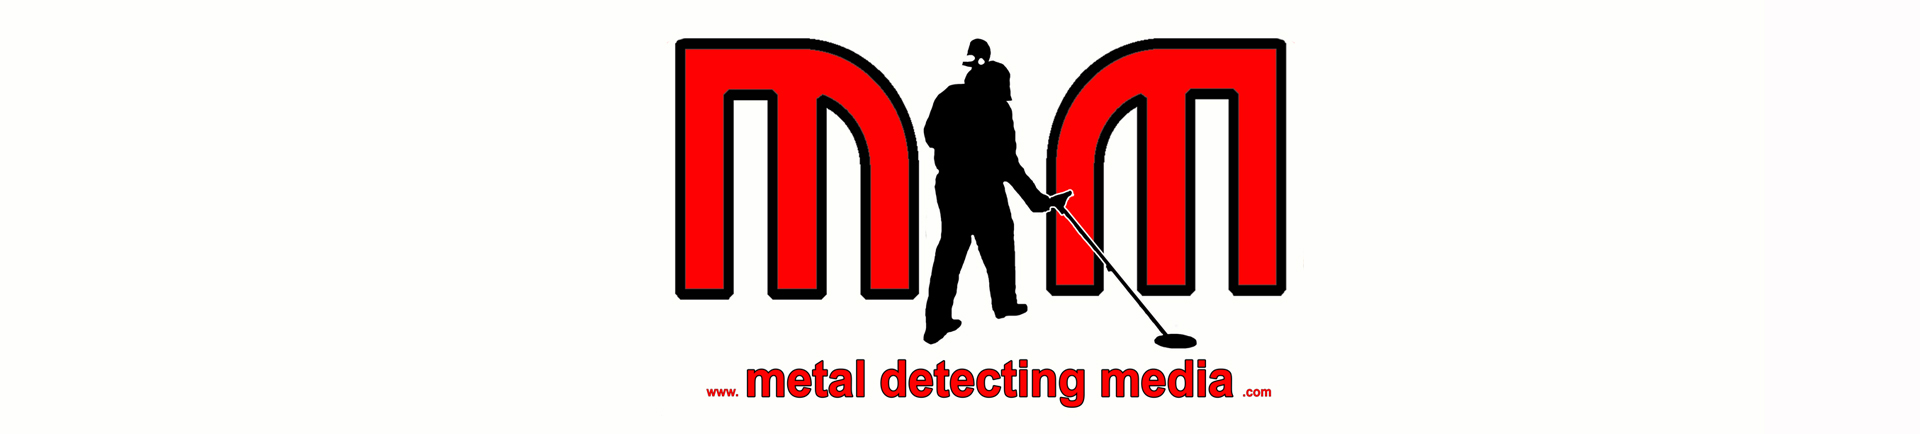 Metal detecting media - Simply detecting